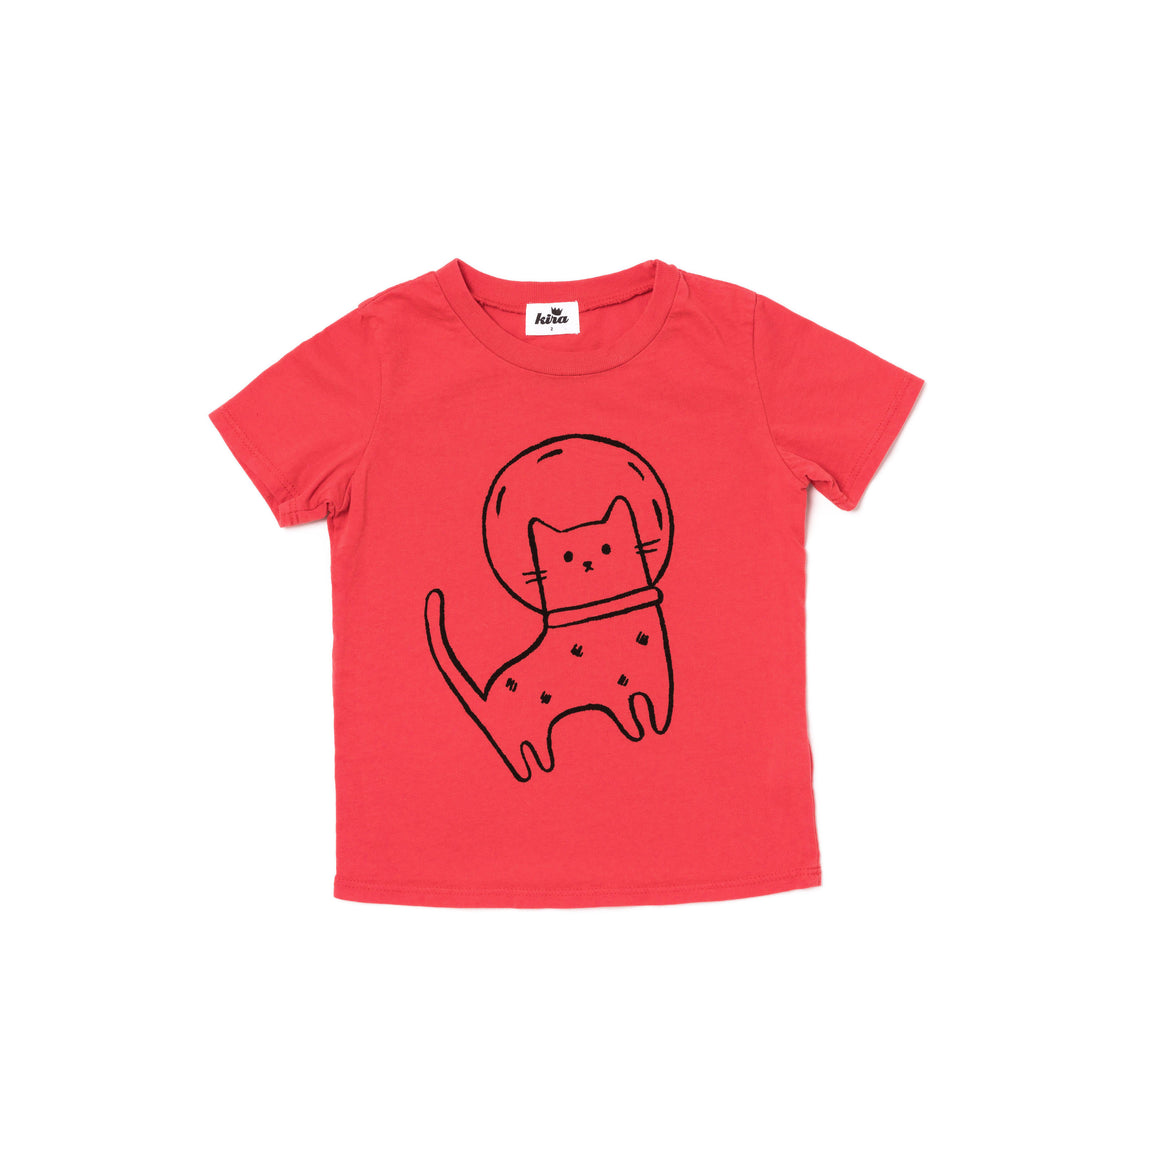 Space Cat Graphic Short Sleeve T-shirt, Fluro Coral